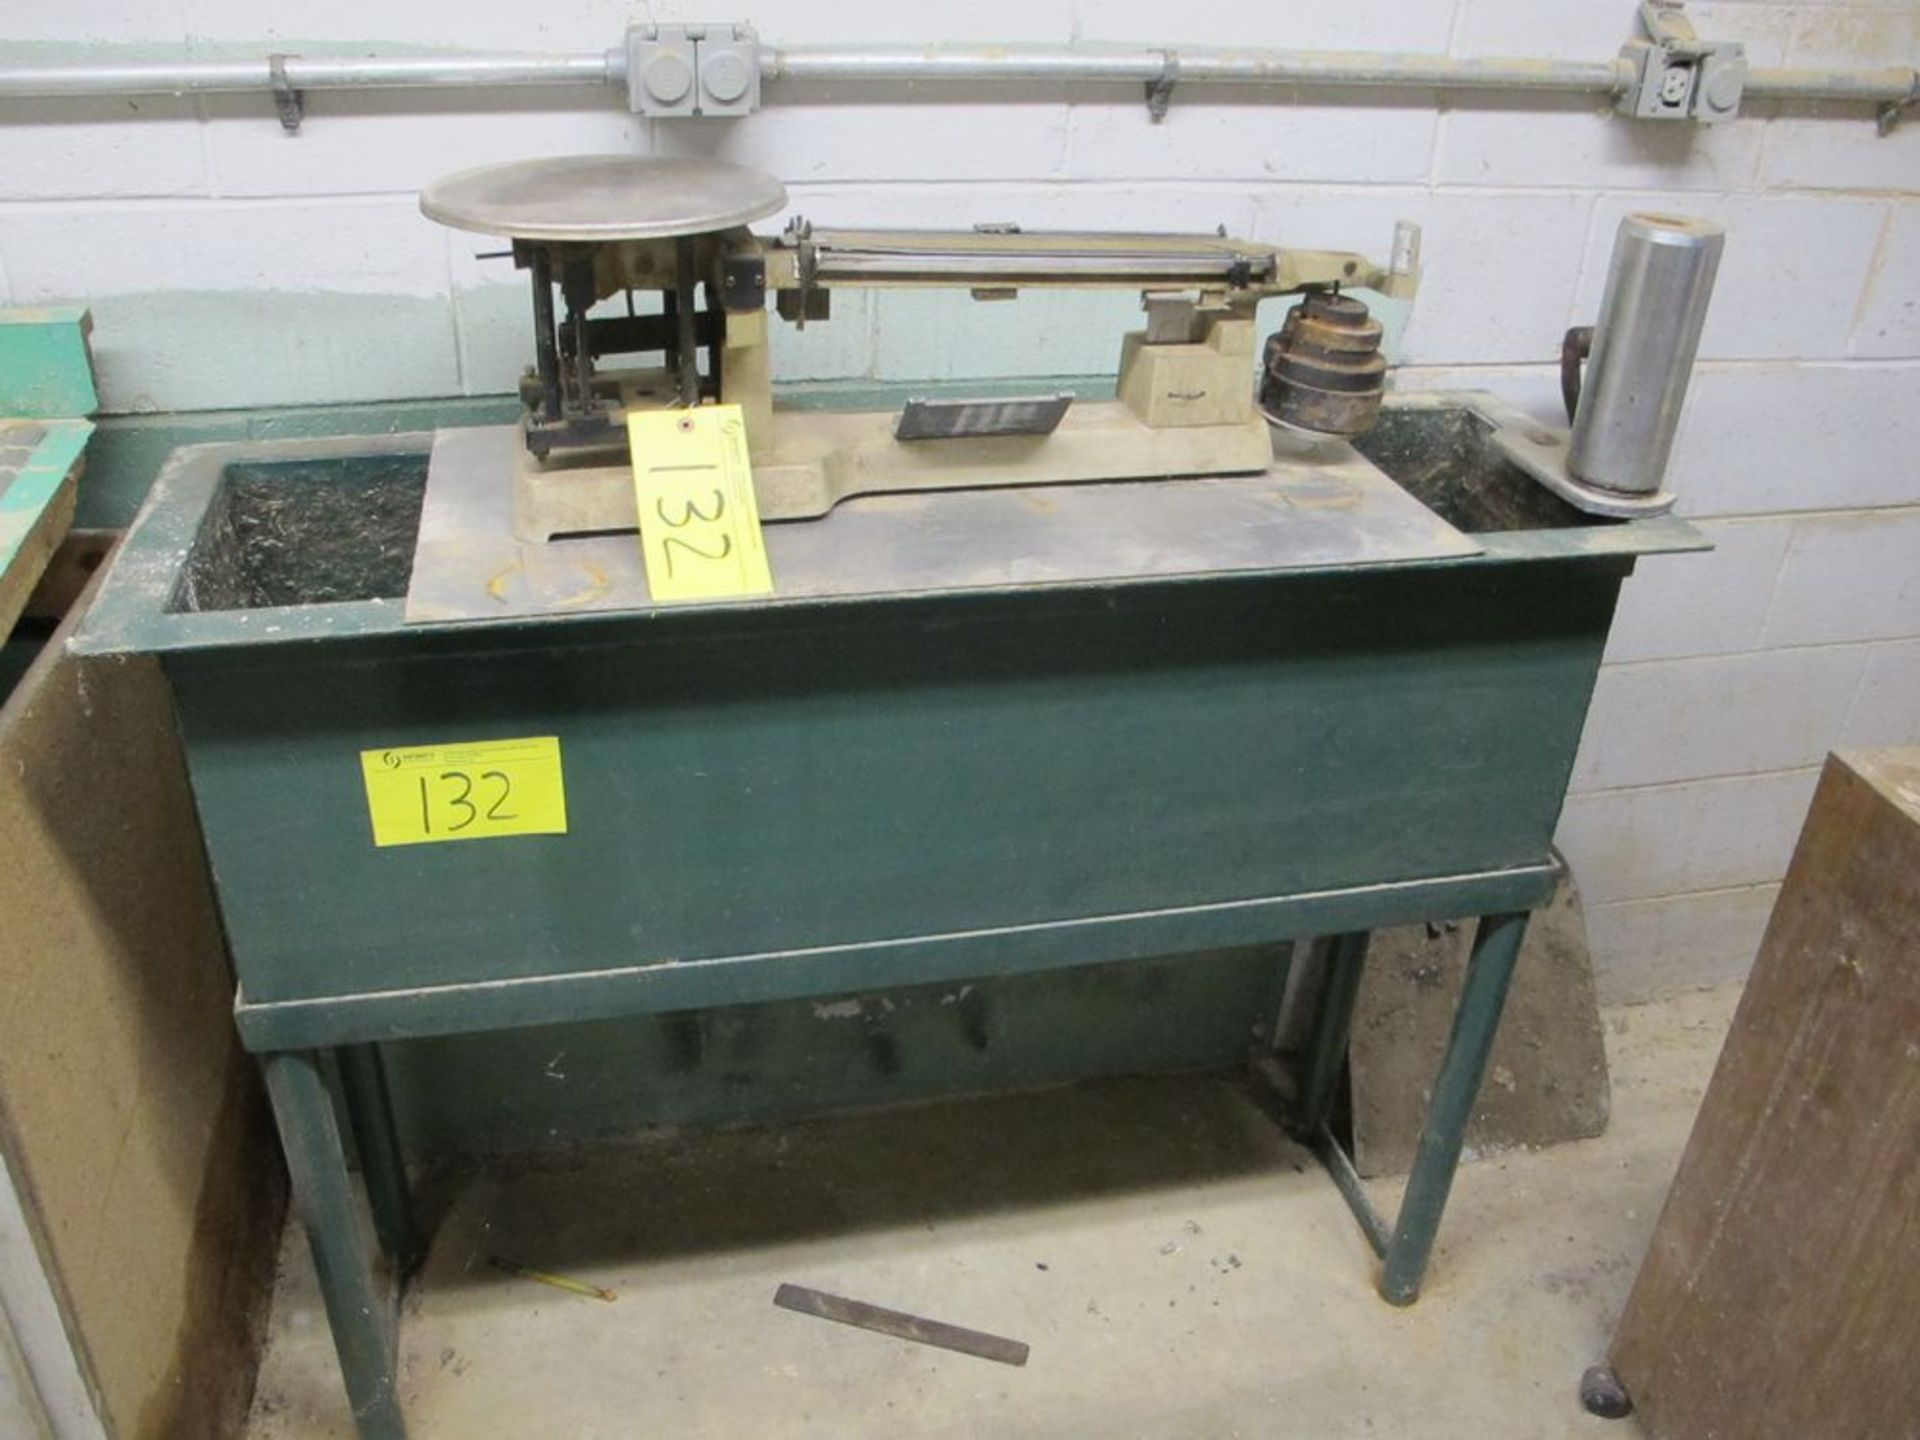 Lot 132 - OHAUS HEAVY DUTY SOLUTION BALANCE SCAL UP TO 45 LBS W/STEEL MIXING TANK (WOOD BLDG - 1ST FL LAB)